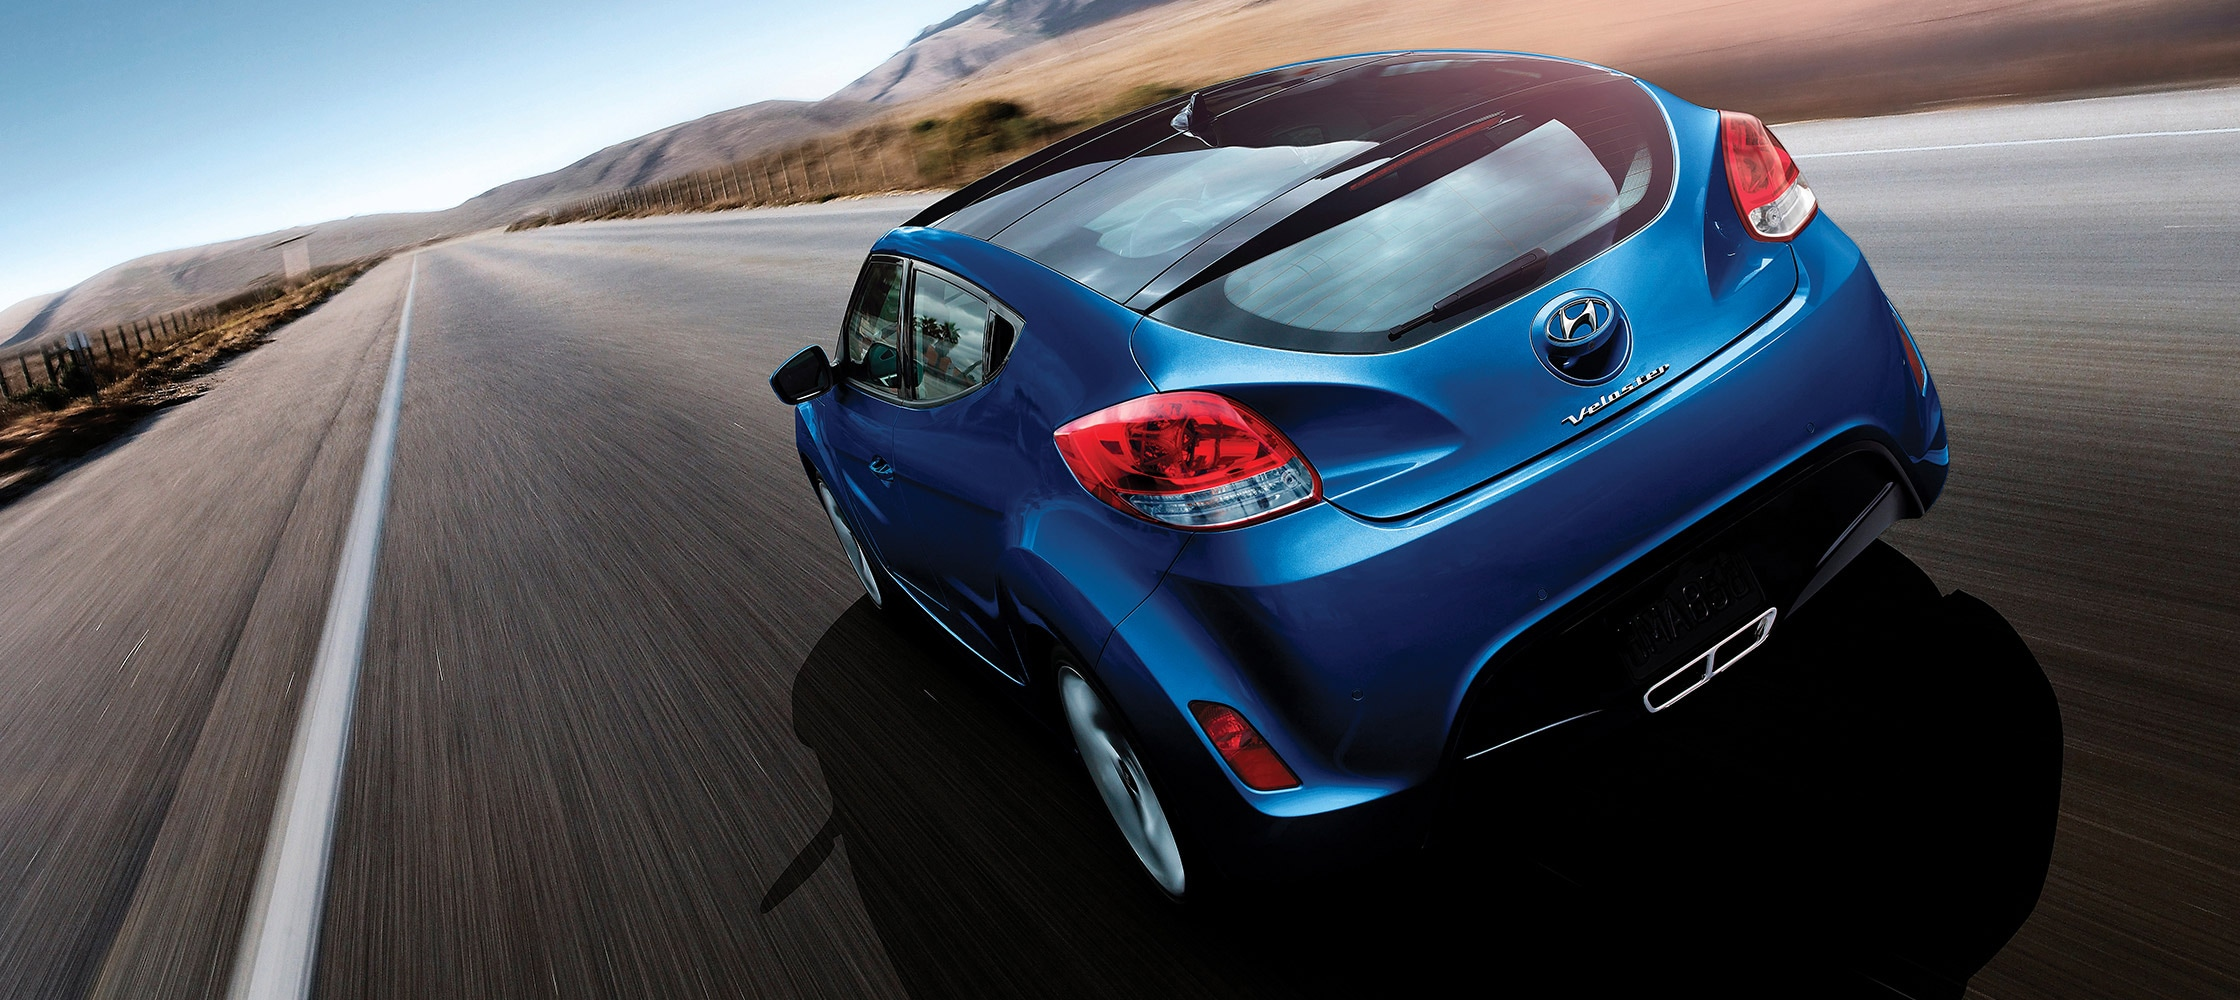 Exterior action photo of blue Hyundai Veloster 2016 three door hatchback with sleek rear lights